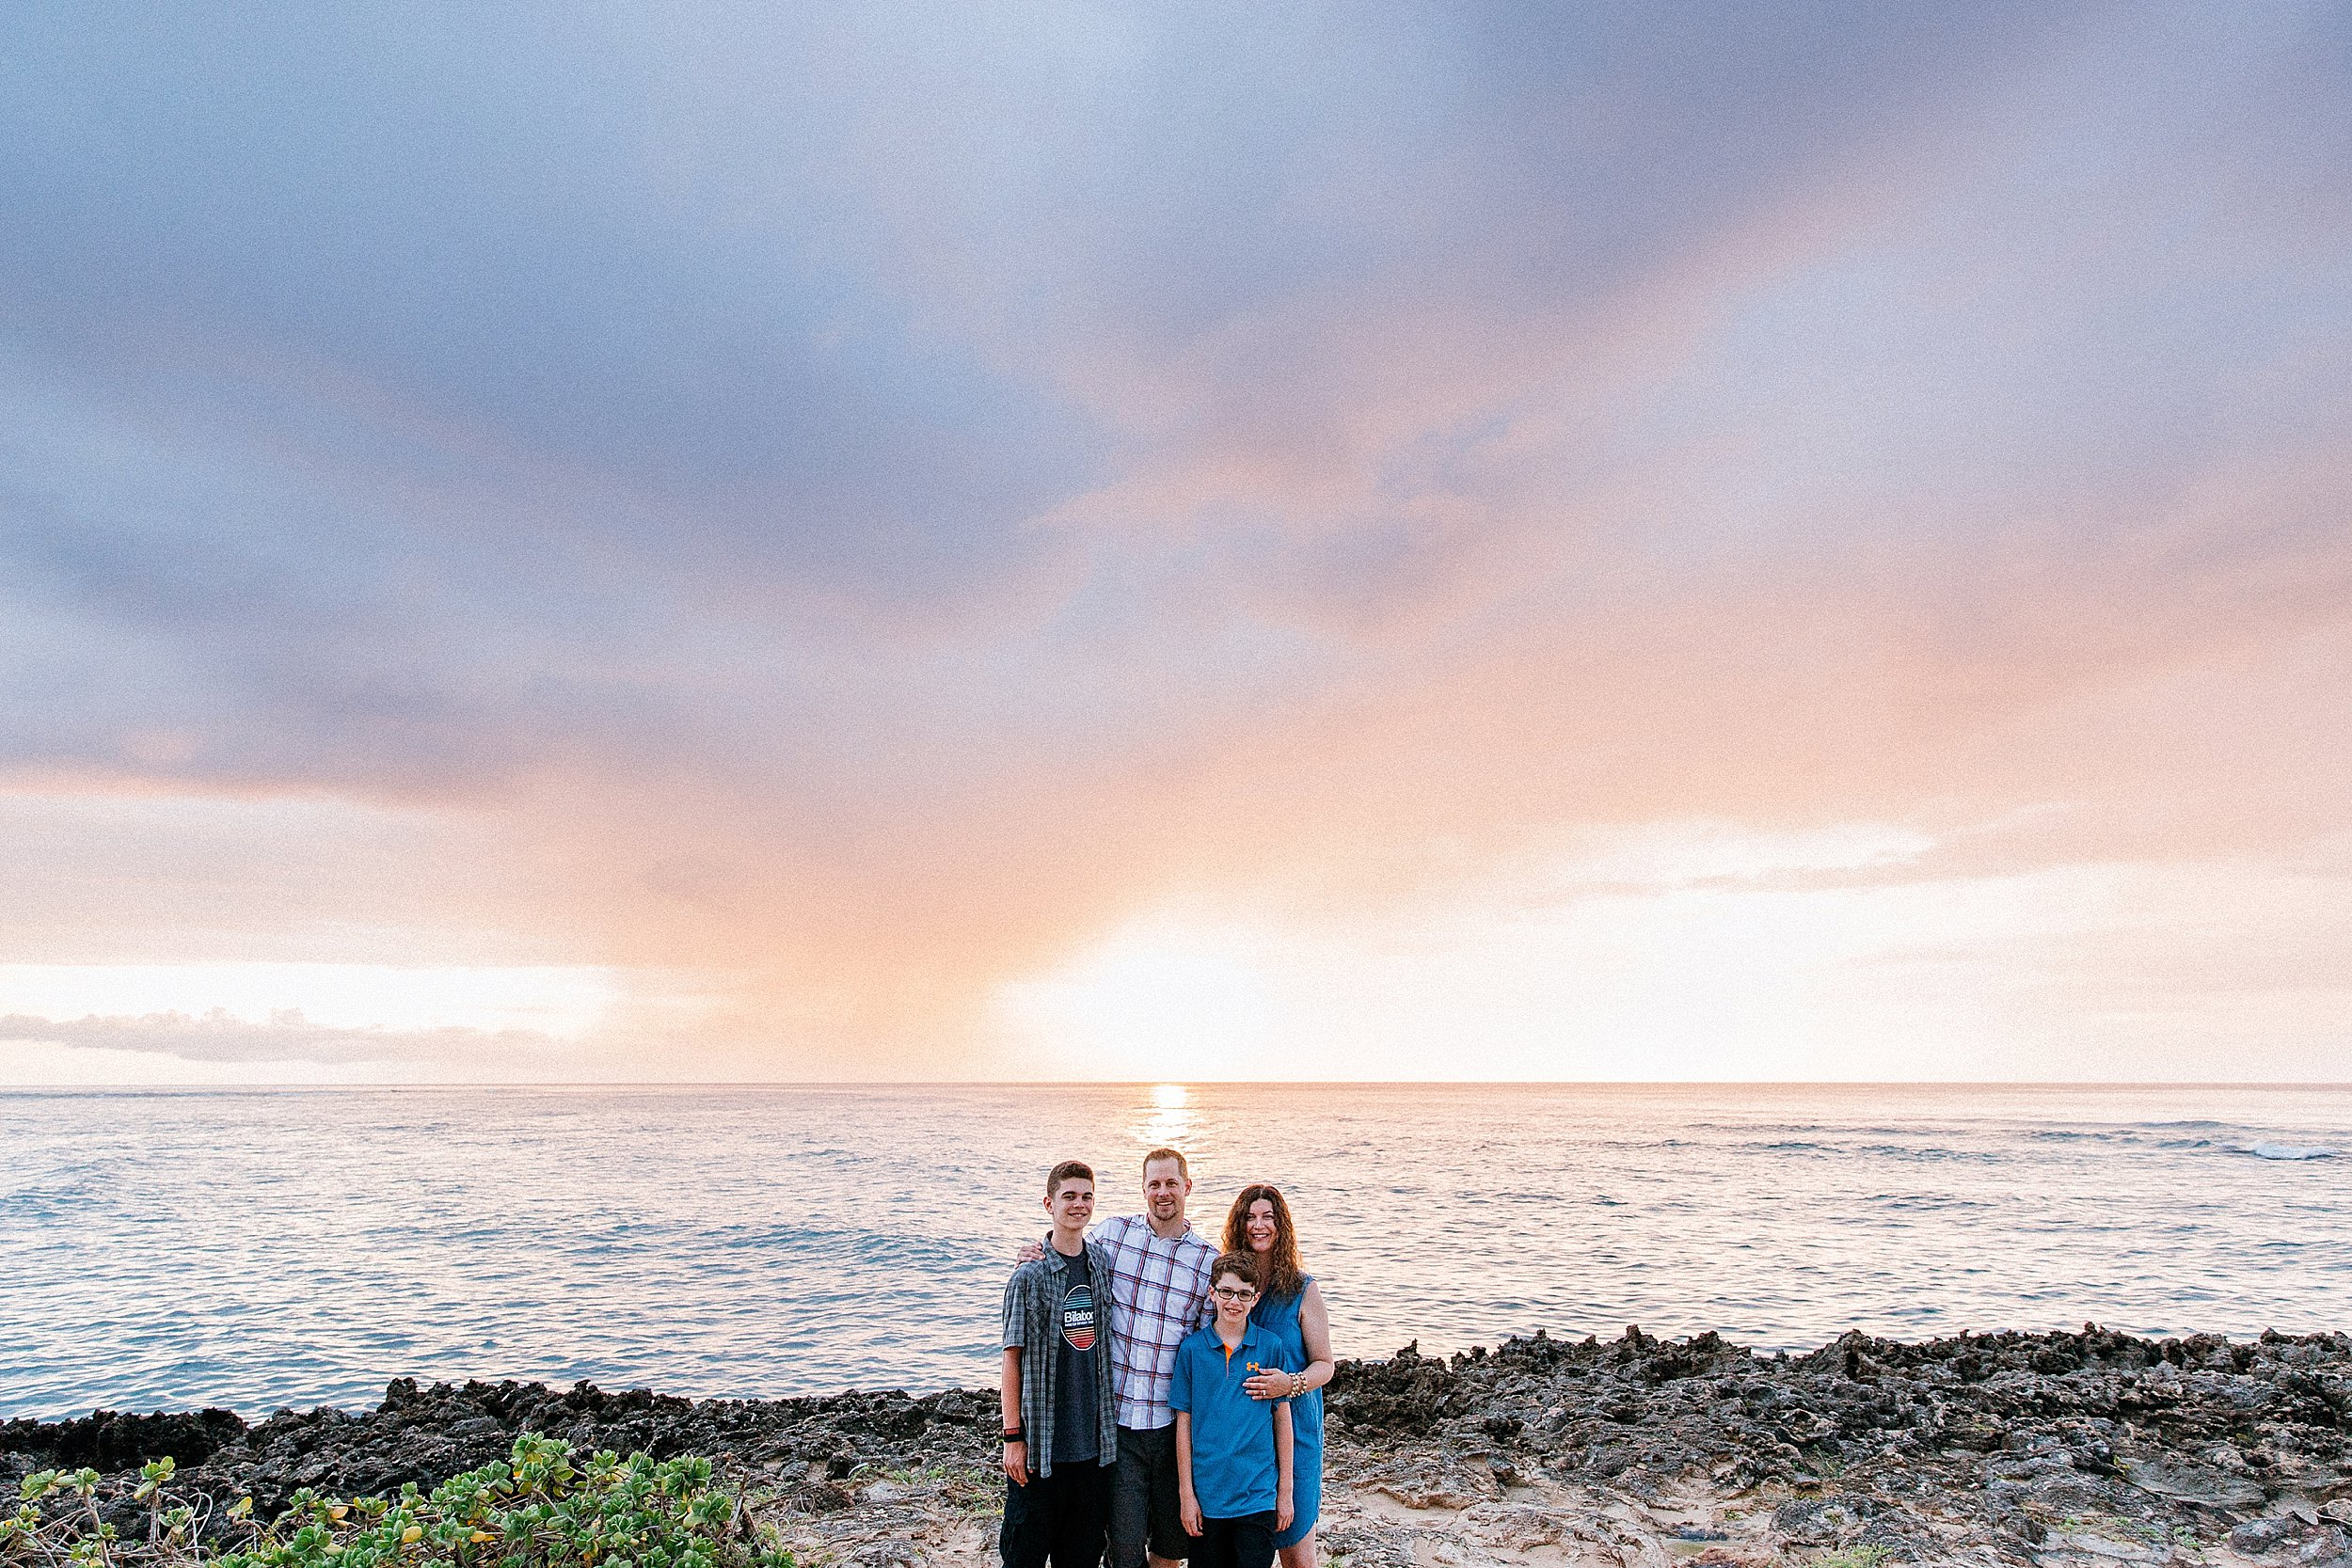 The Vittore family out on the cliffside point of Turtle Bay Resort at sunset time.